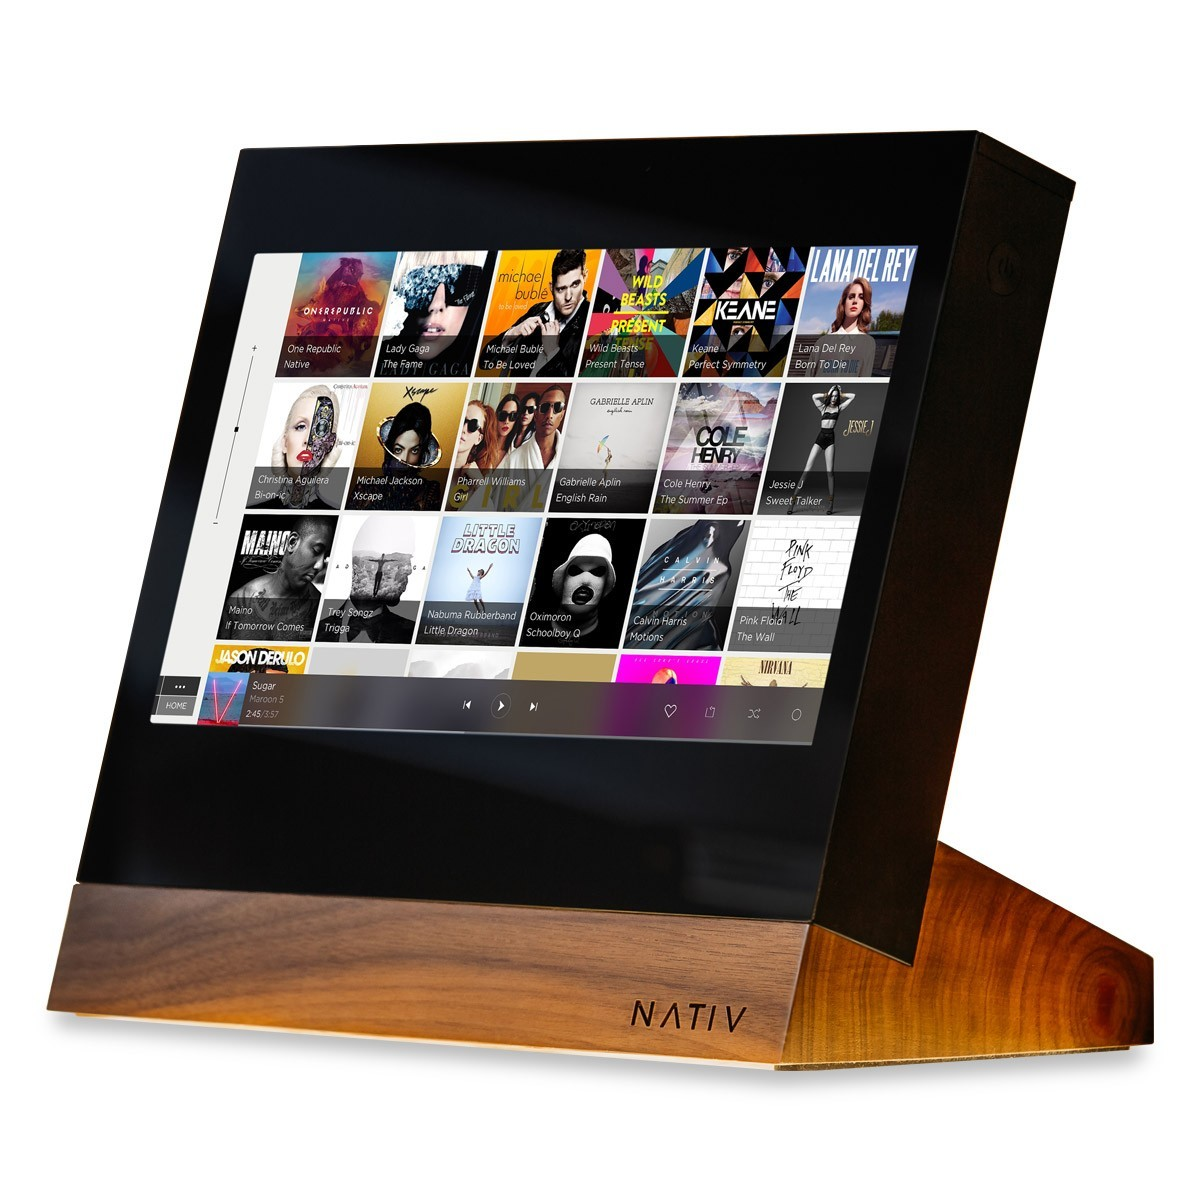 NATIV VITA - Hifi Streamer with Touchscreen DSD256 32bit 384Khz Walnut Stand